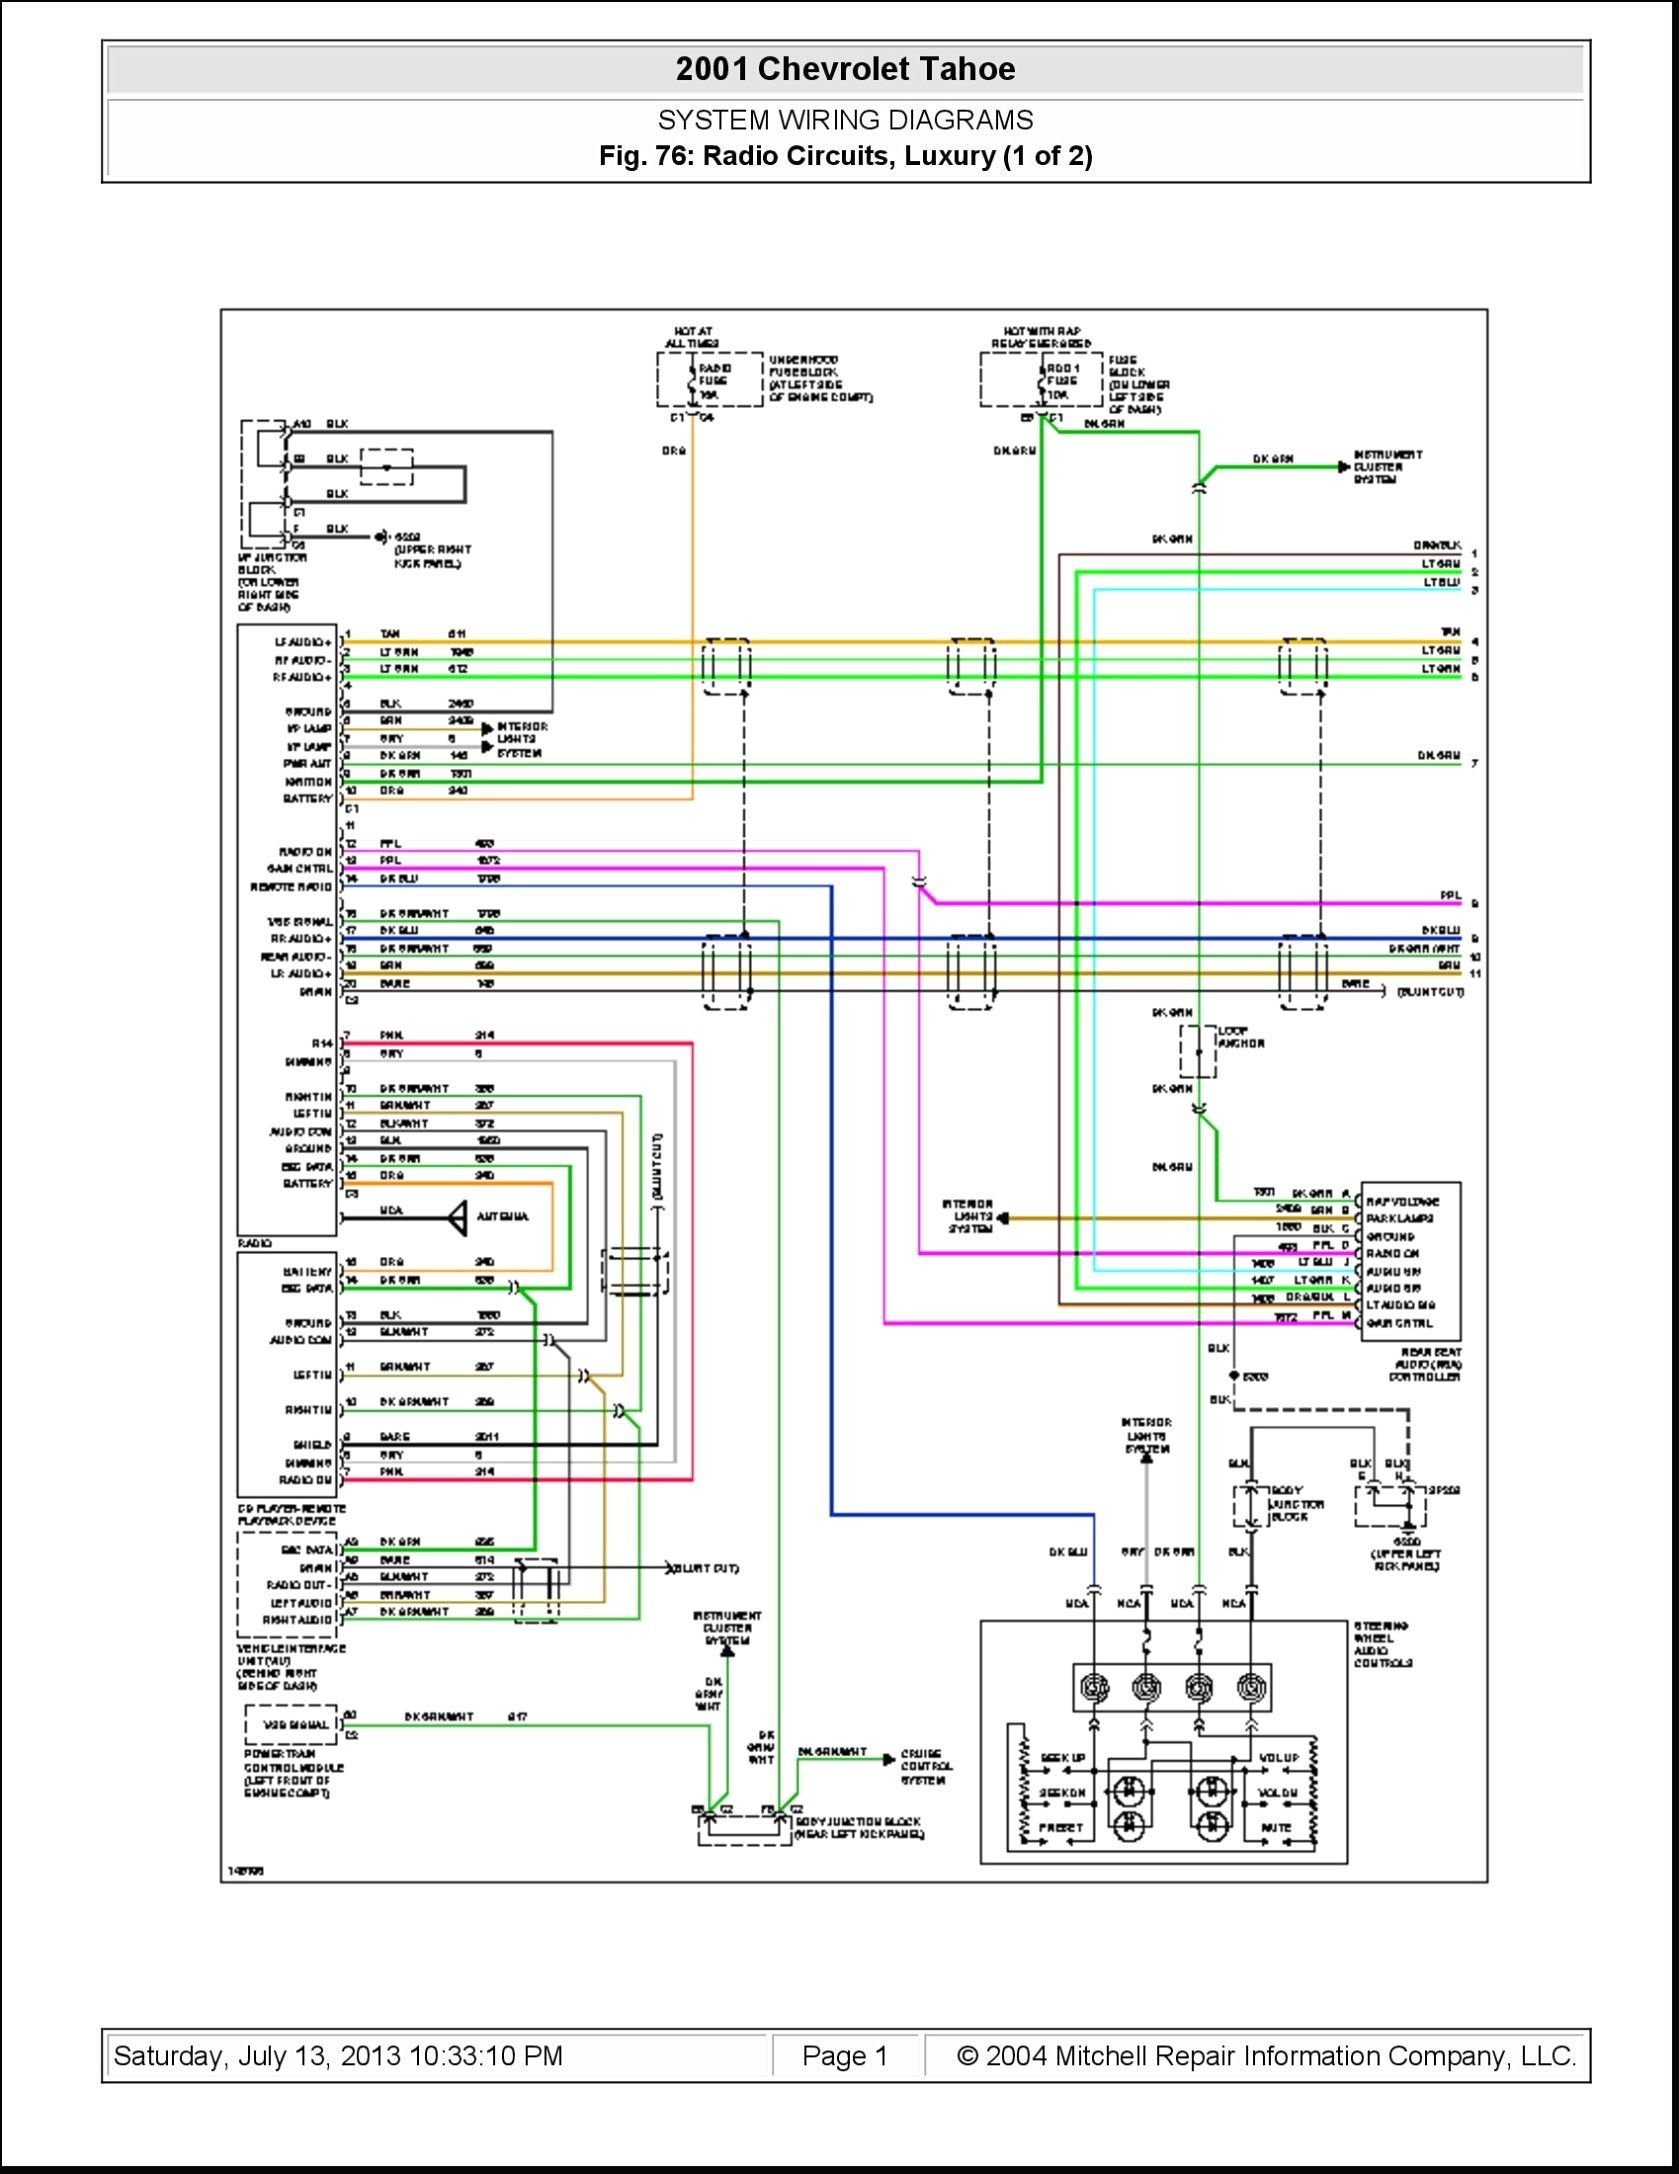 New Delco Amplifier Wiring Diagram